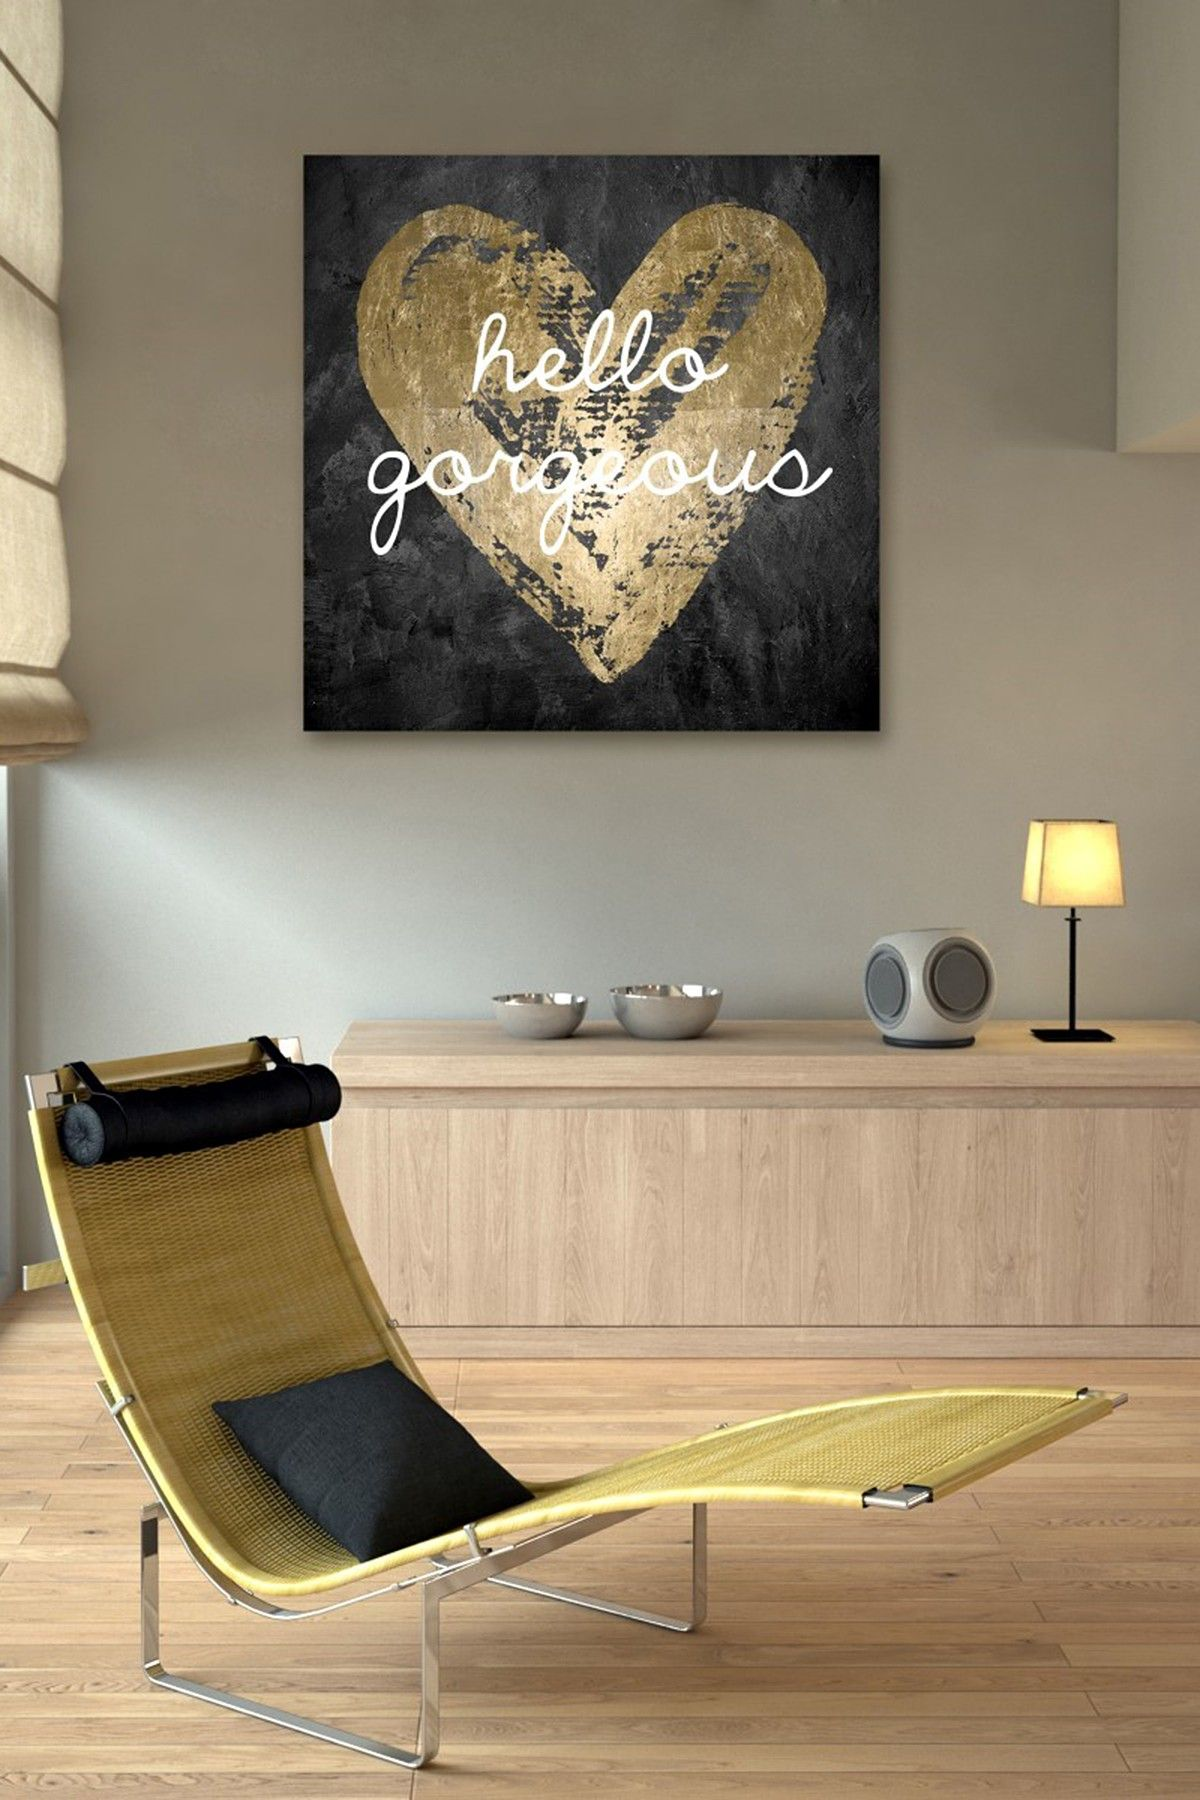 oliver gal gorgeous salute canvas wall art on hautelook wantee oliver gal gorgeous salute canvas wall art on hautelook